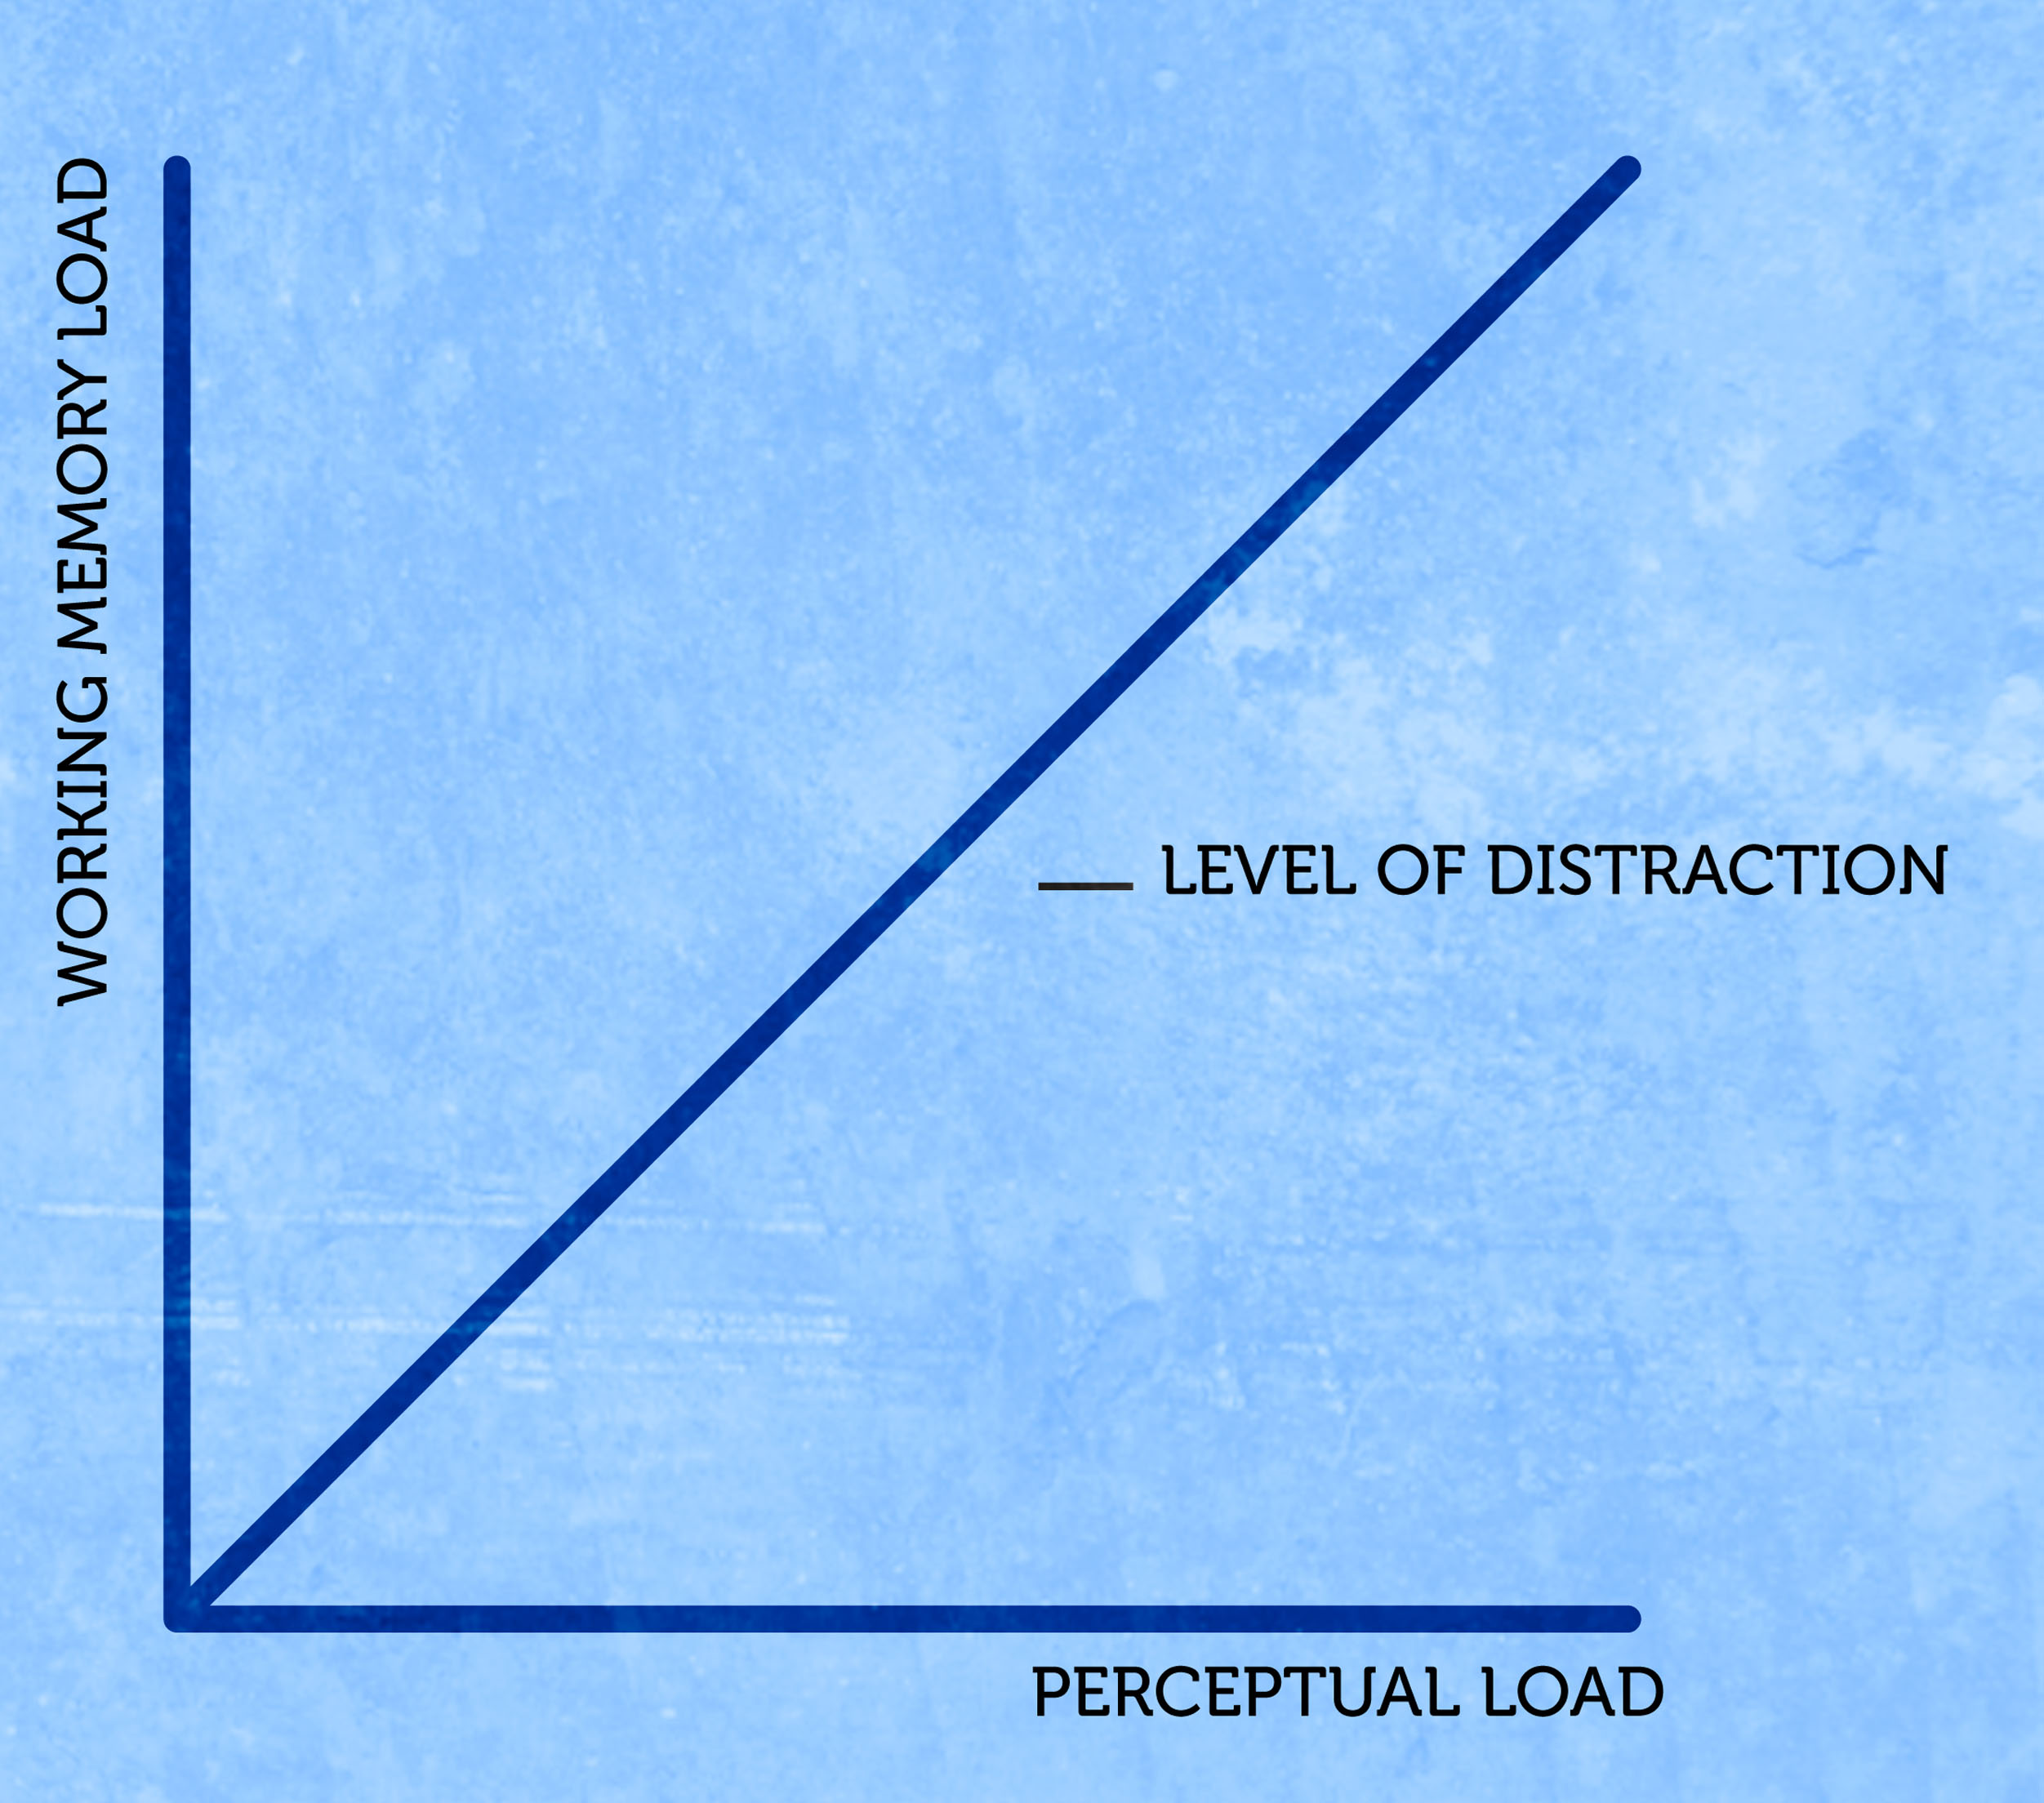 A graph showing when information on a page is congruent, the more perceptual loading is filled and the more working memory is strained, the more distracted we are